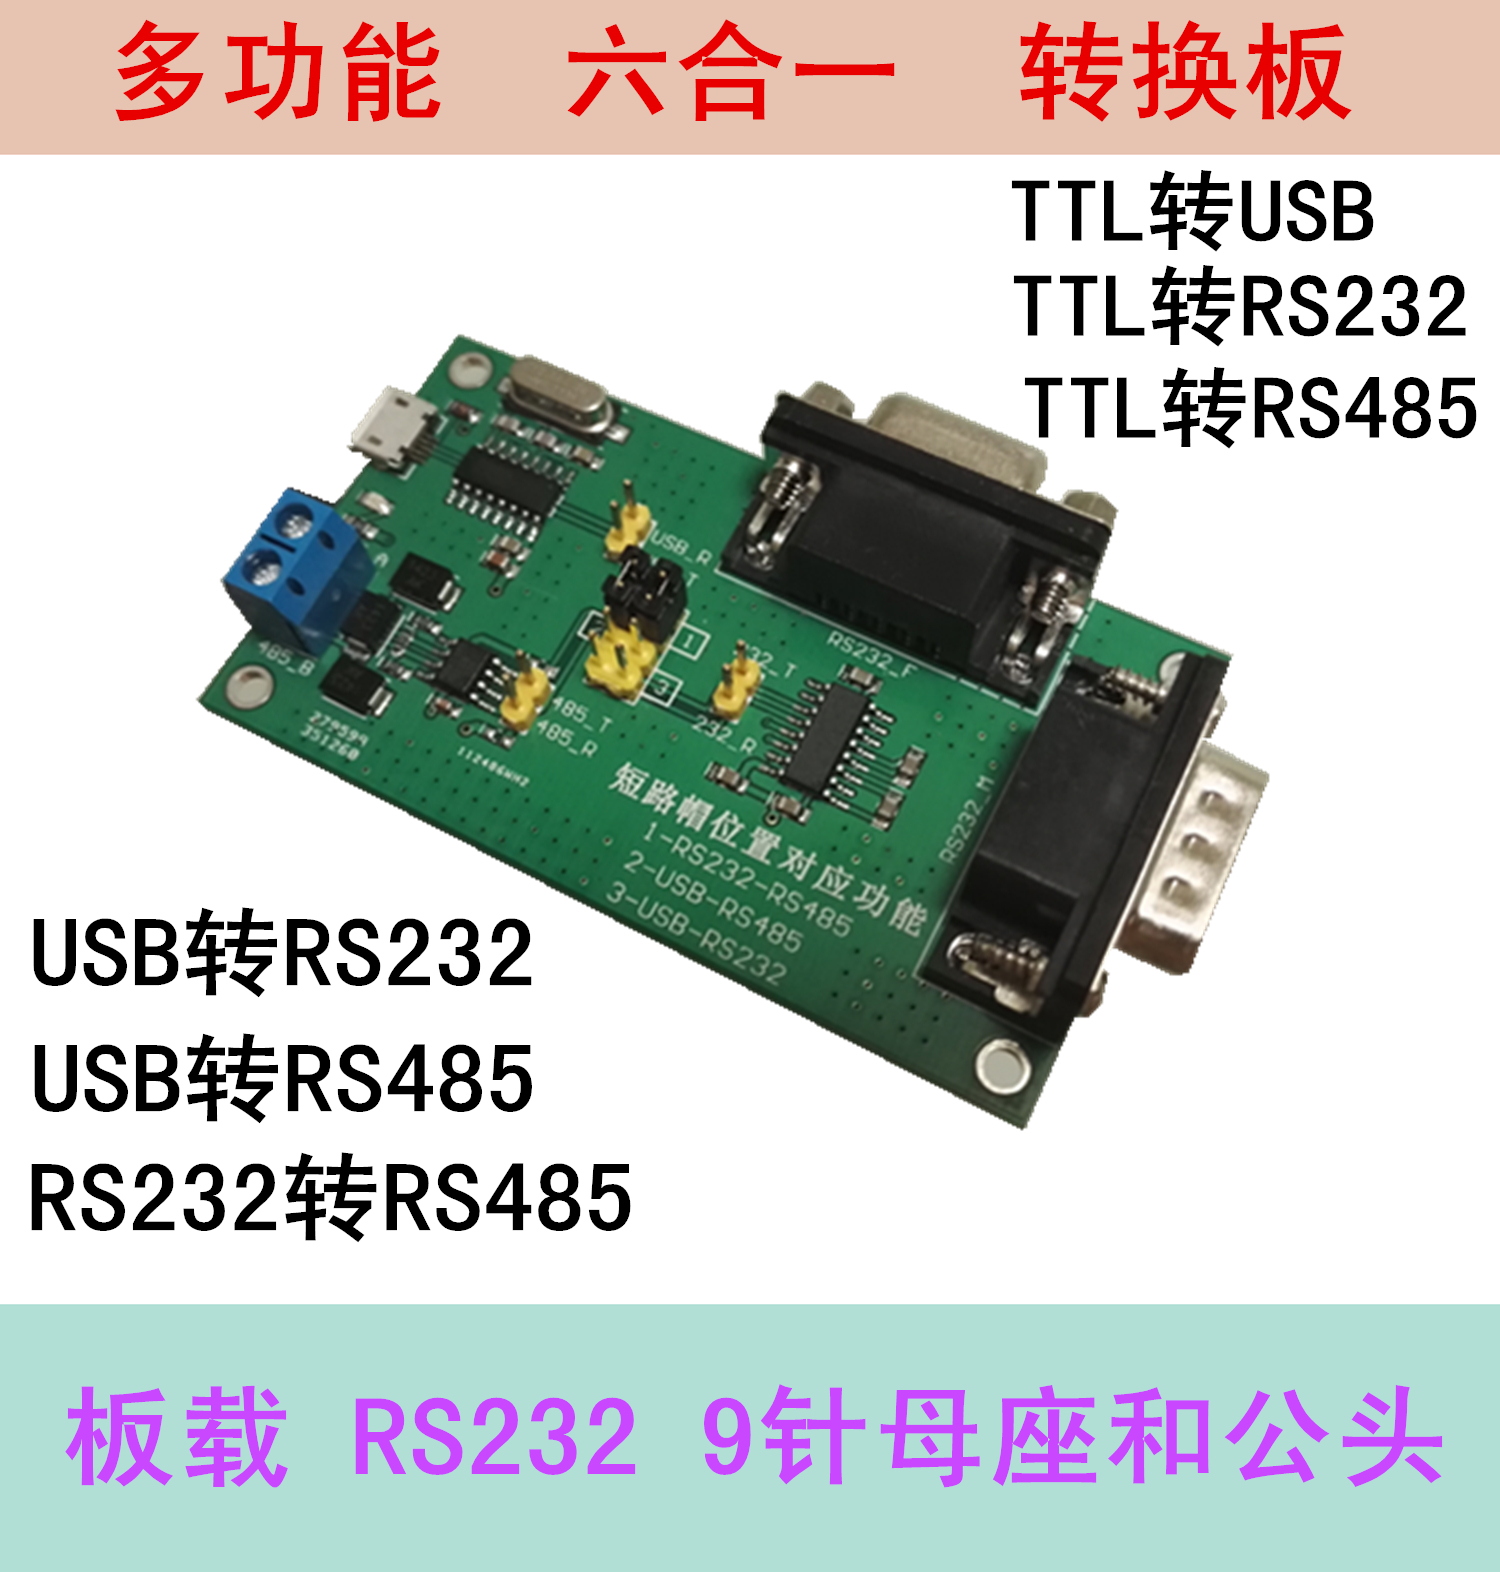 Multi function conversion board Liuhe USB turn RS232 USB RS485 RS232 to RS485 brand it 1010 rs232 to rs485 converter 485 to 232 conversion bidirectional passive protocol converter